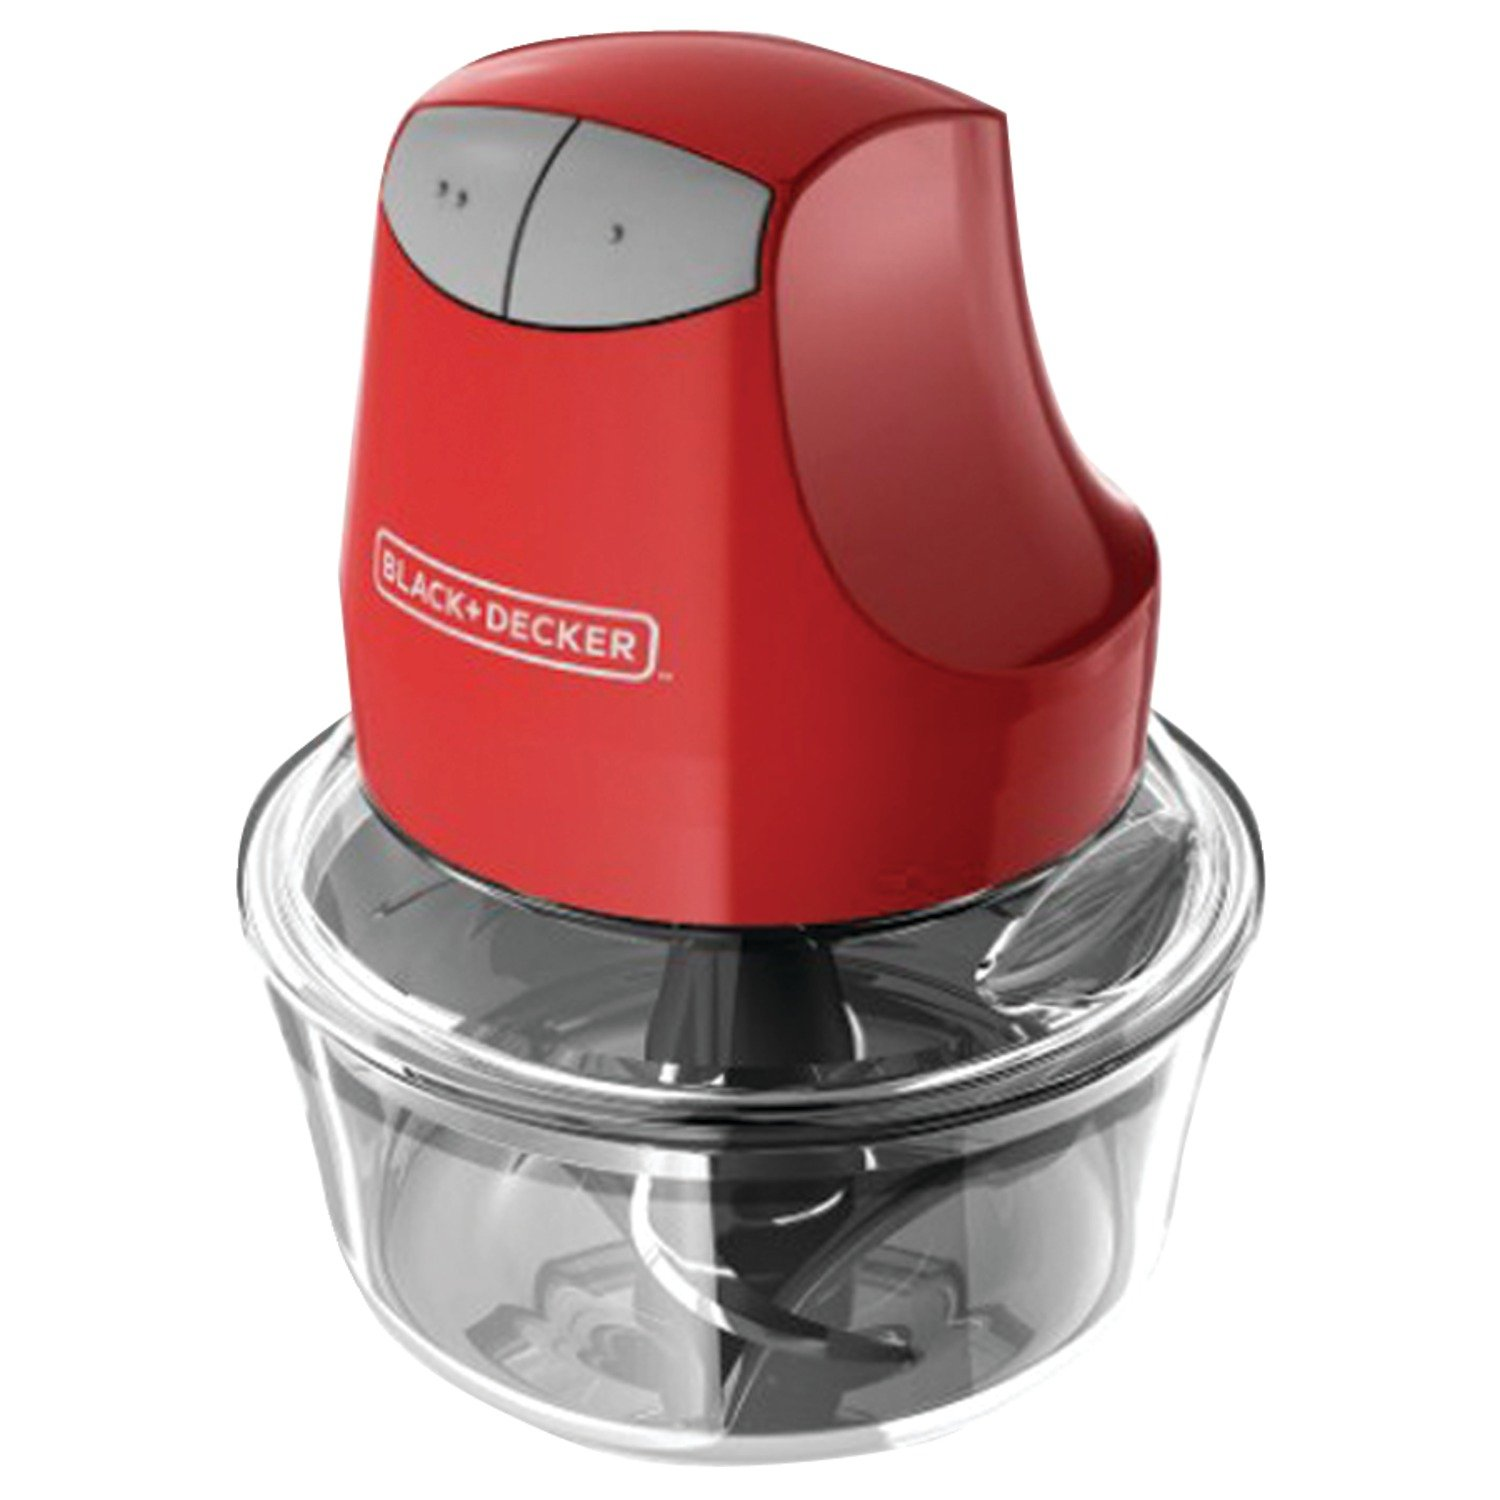 BLACK+DECKER EHC3002B Glass Bowl Chopper (Contains Two 4-Cup Bowls and Lids plus Chopper), Red